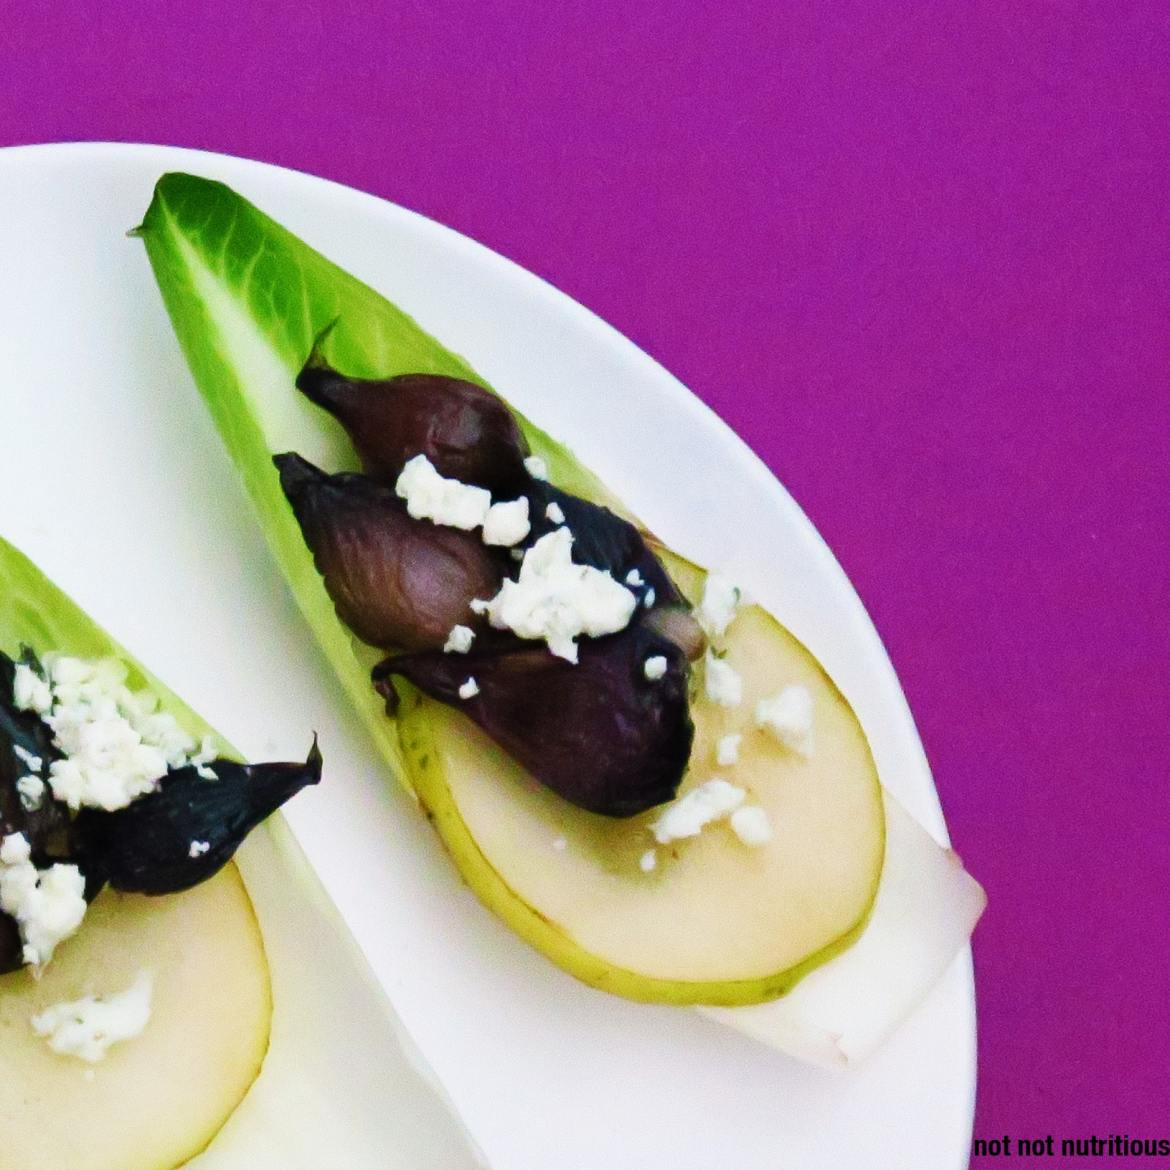 vegetarian_sweet_onion_pear_endive_goat_cheese_MG_1771